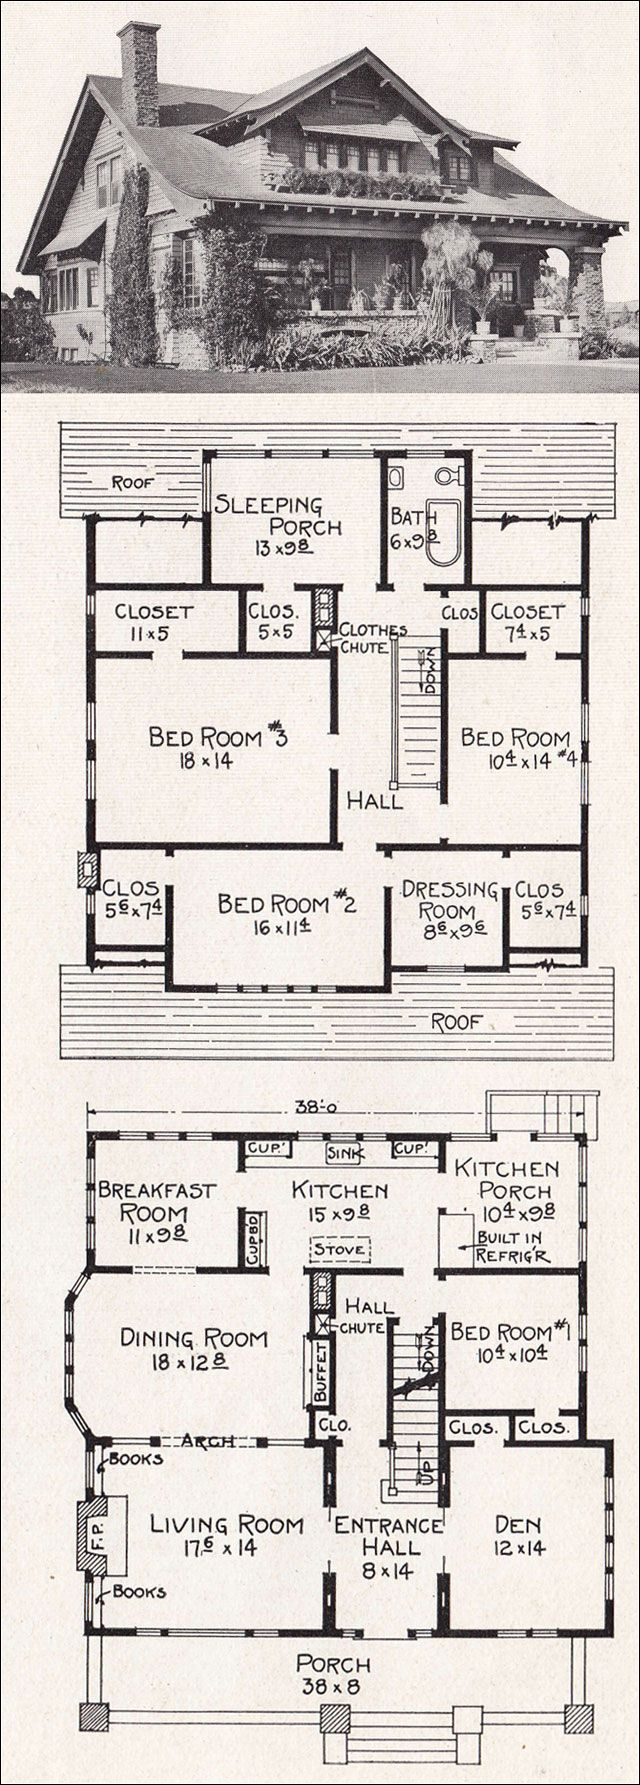 California Bungalow Craftsman style home plan 1918 E W Stillwell